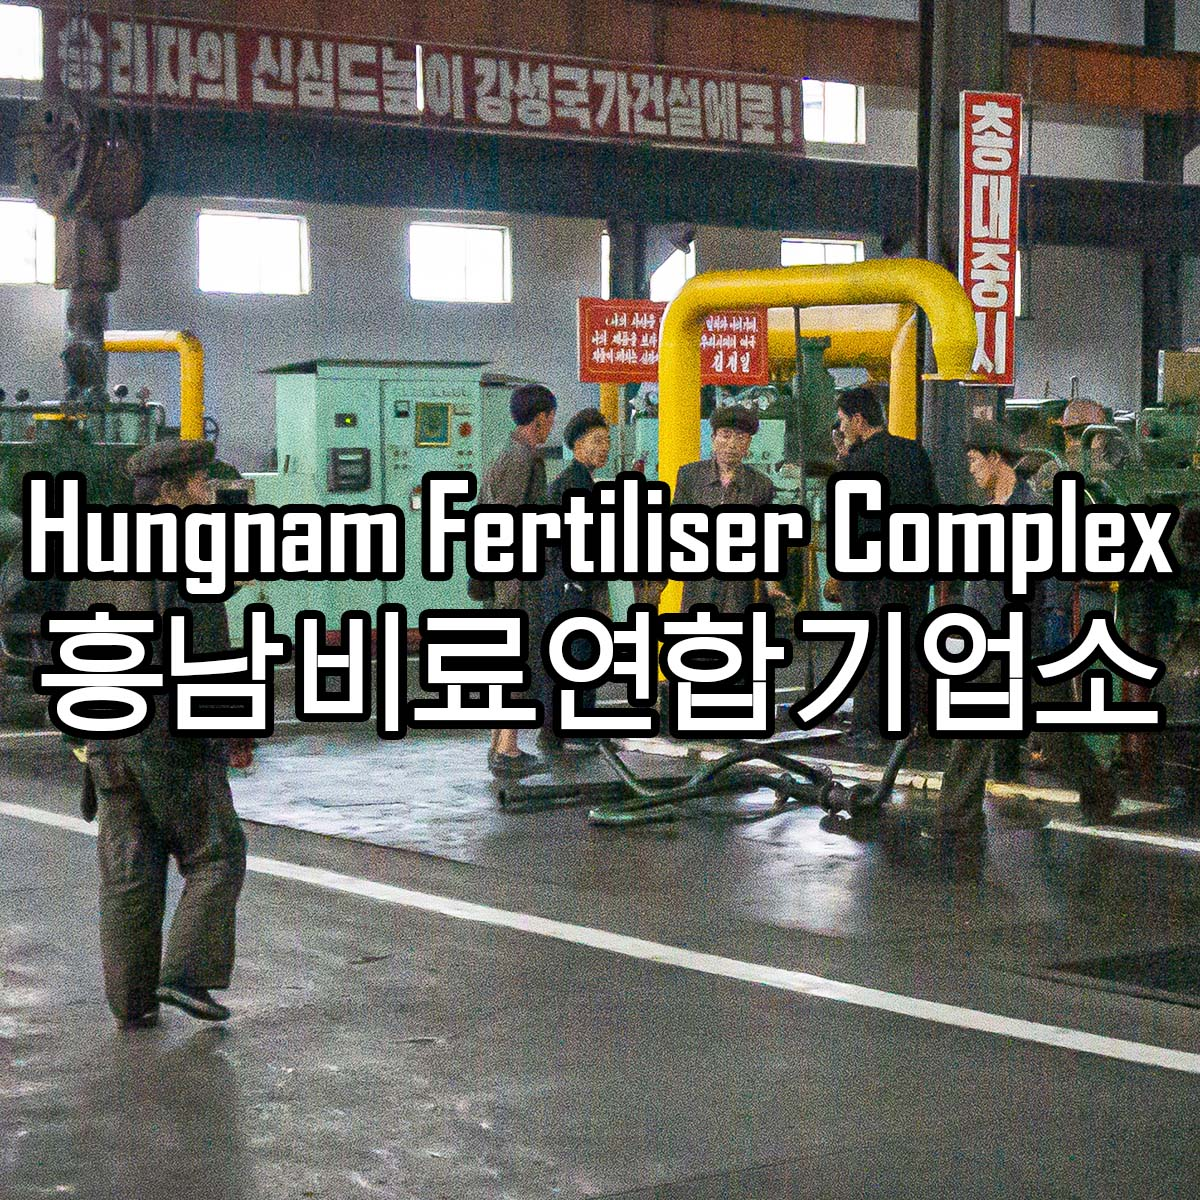 Hungnam Fertilizer Complex